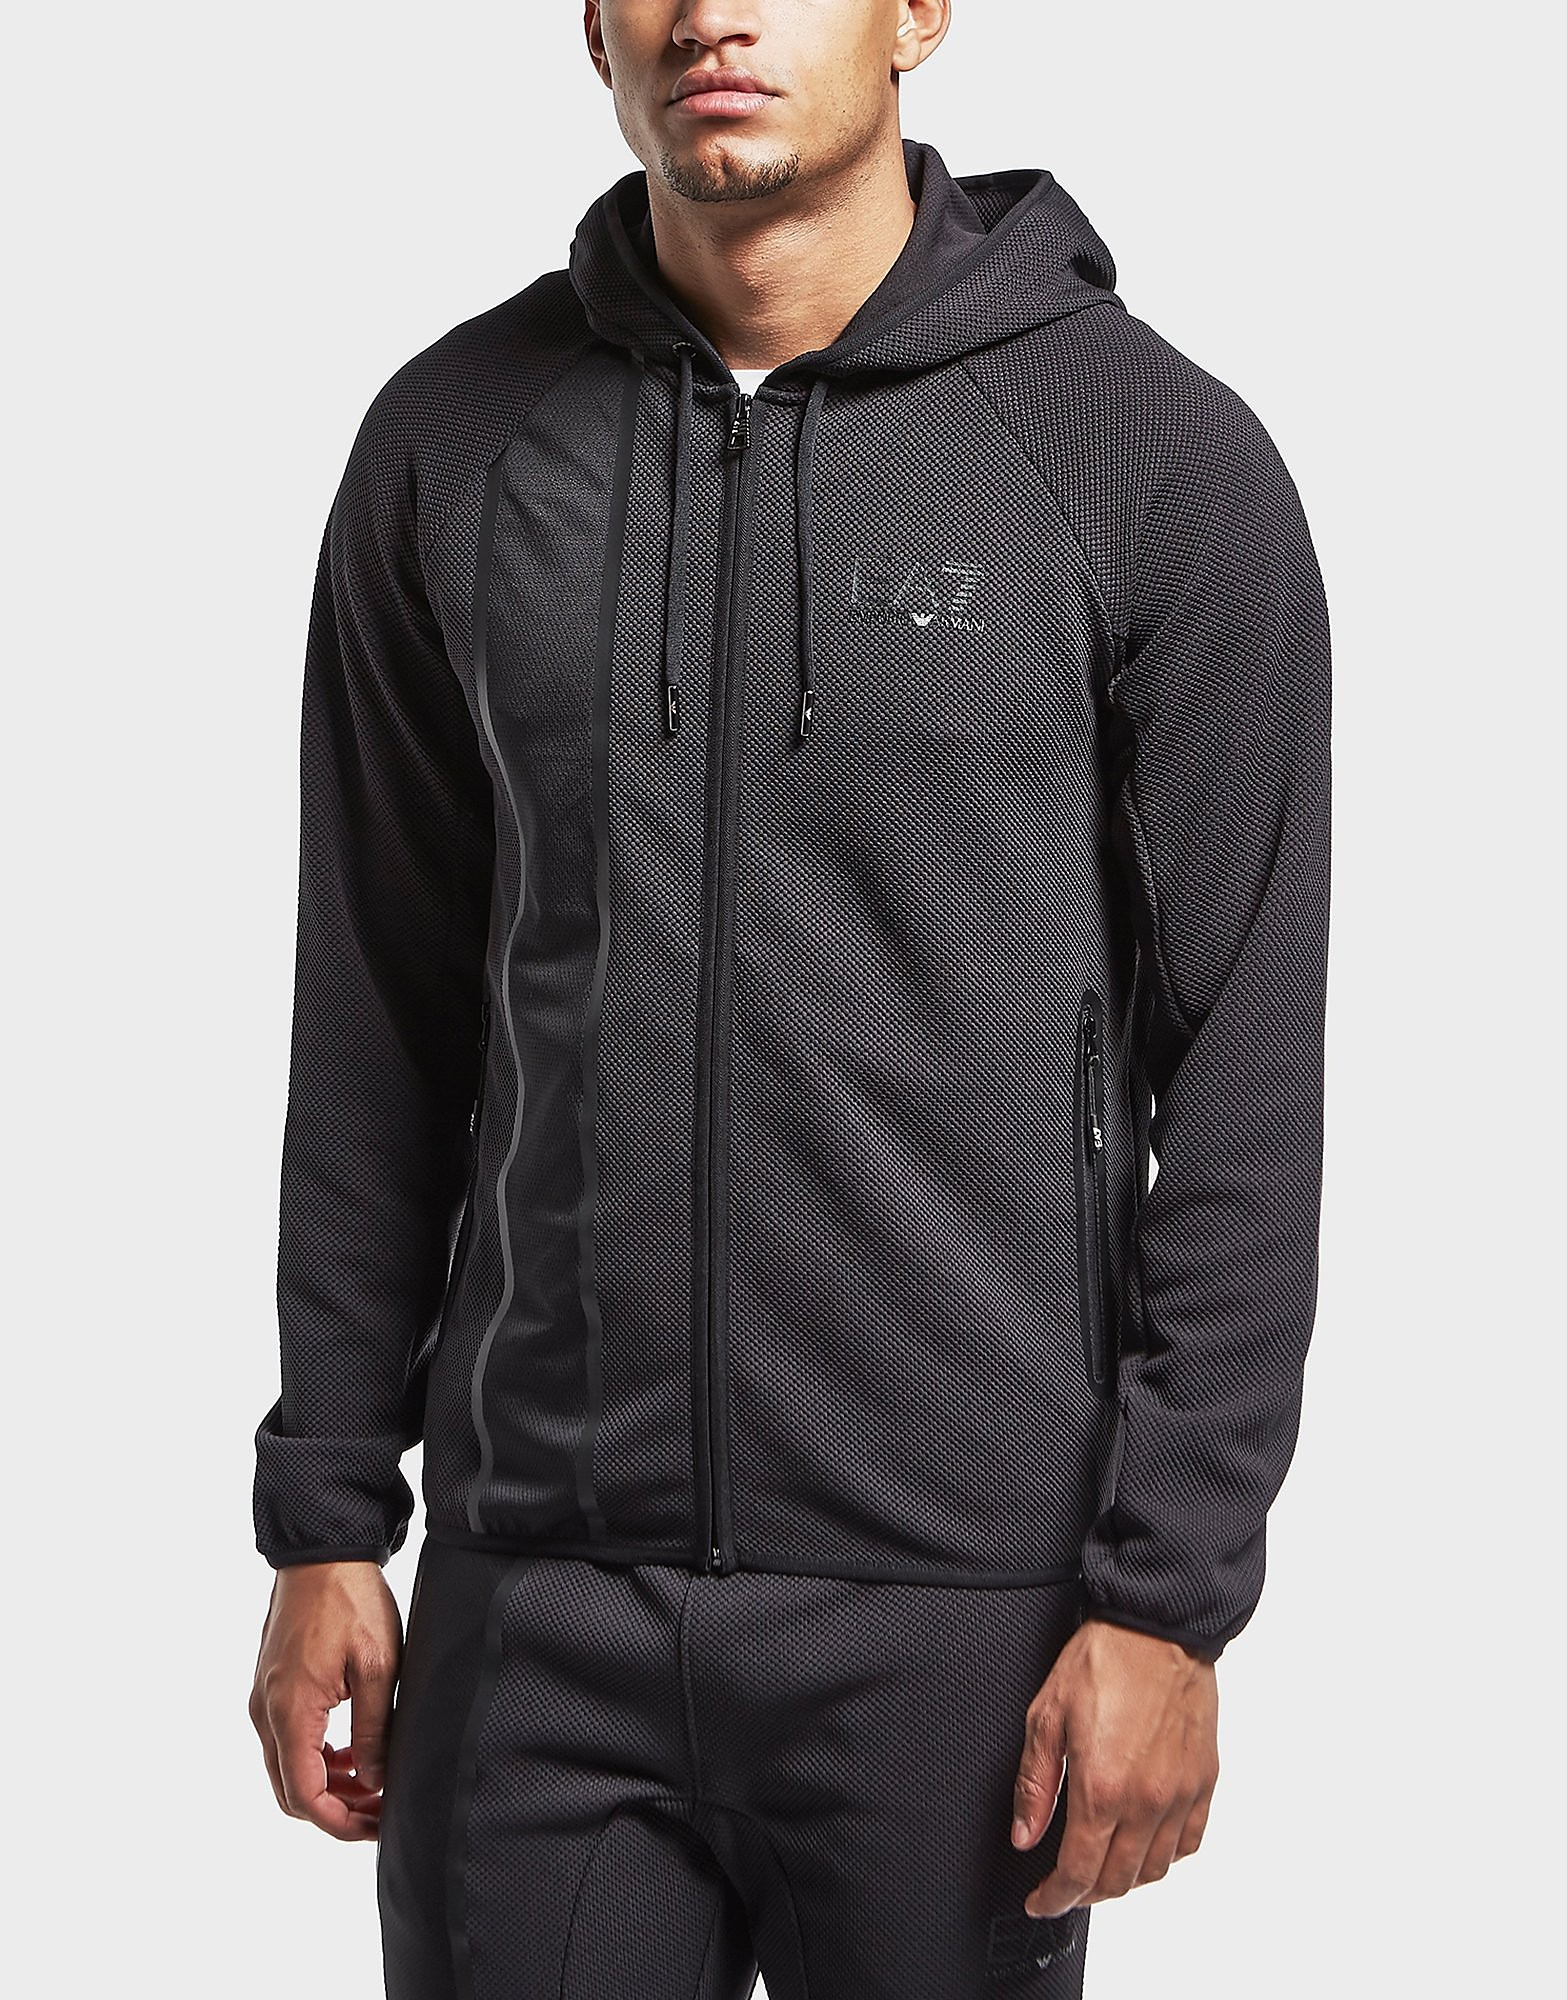 Emporio Armani EA7 Evolution Mesh Full Zip Hoodie